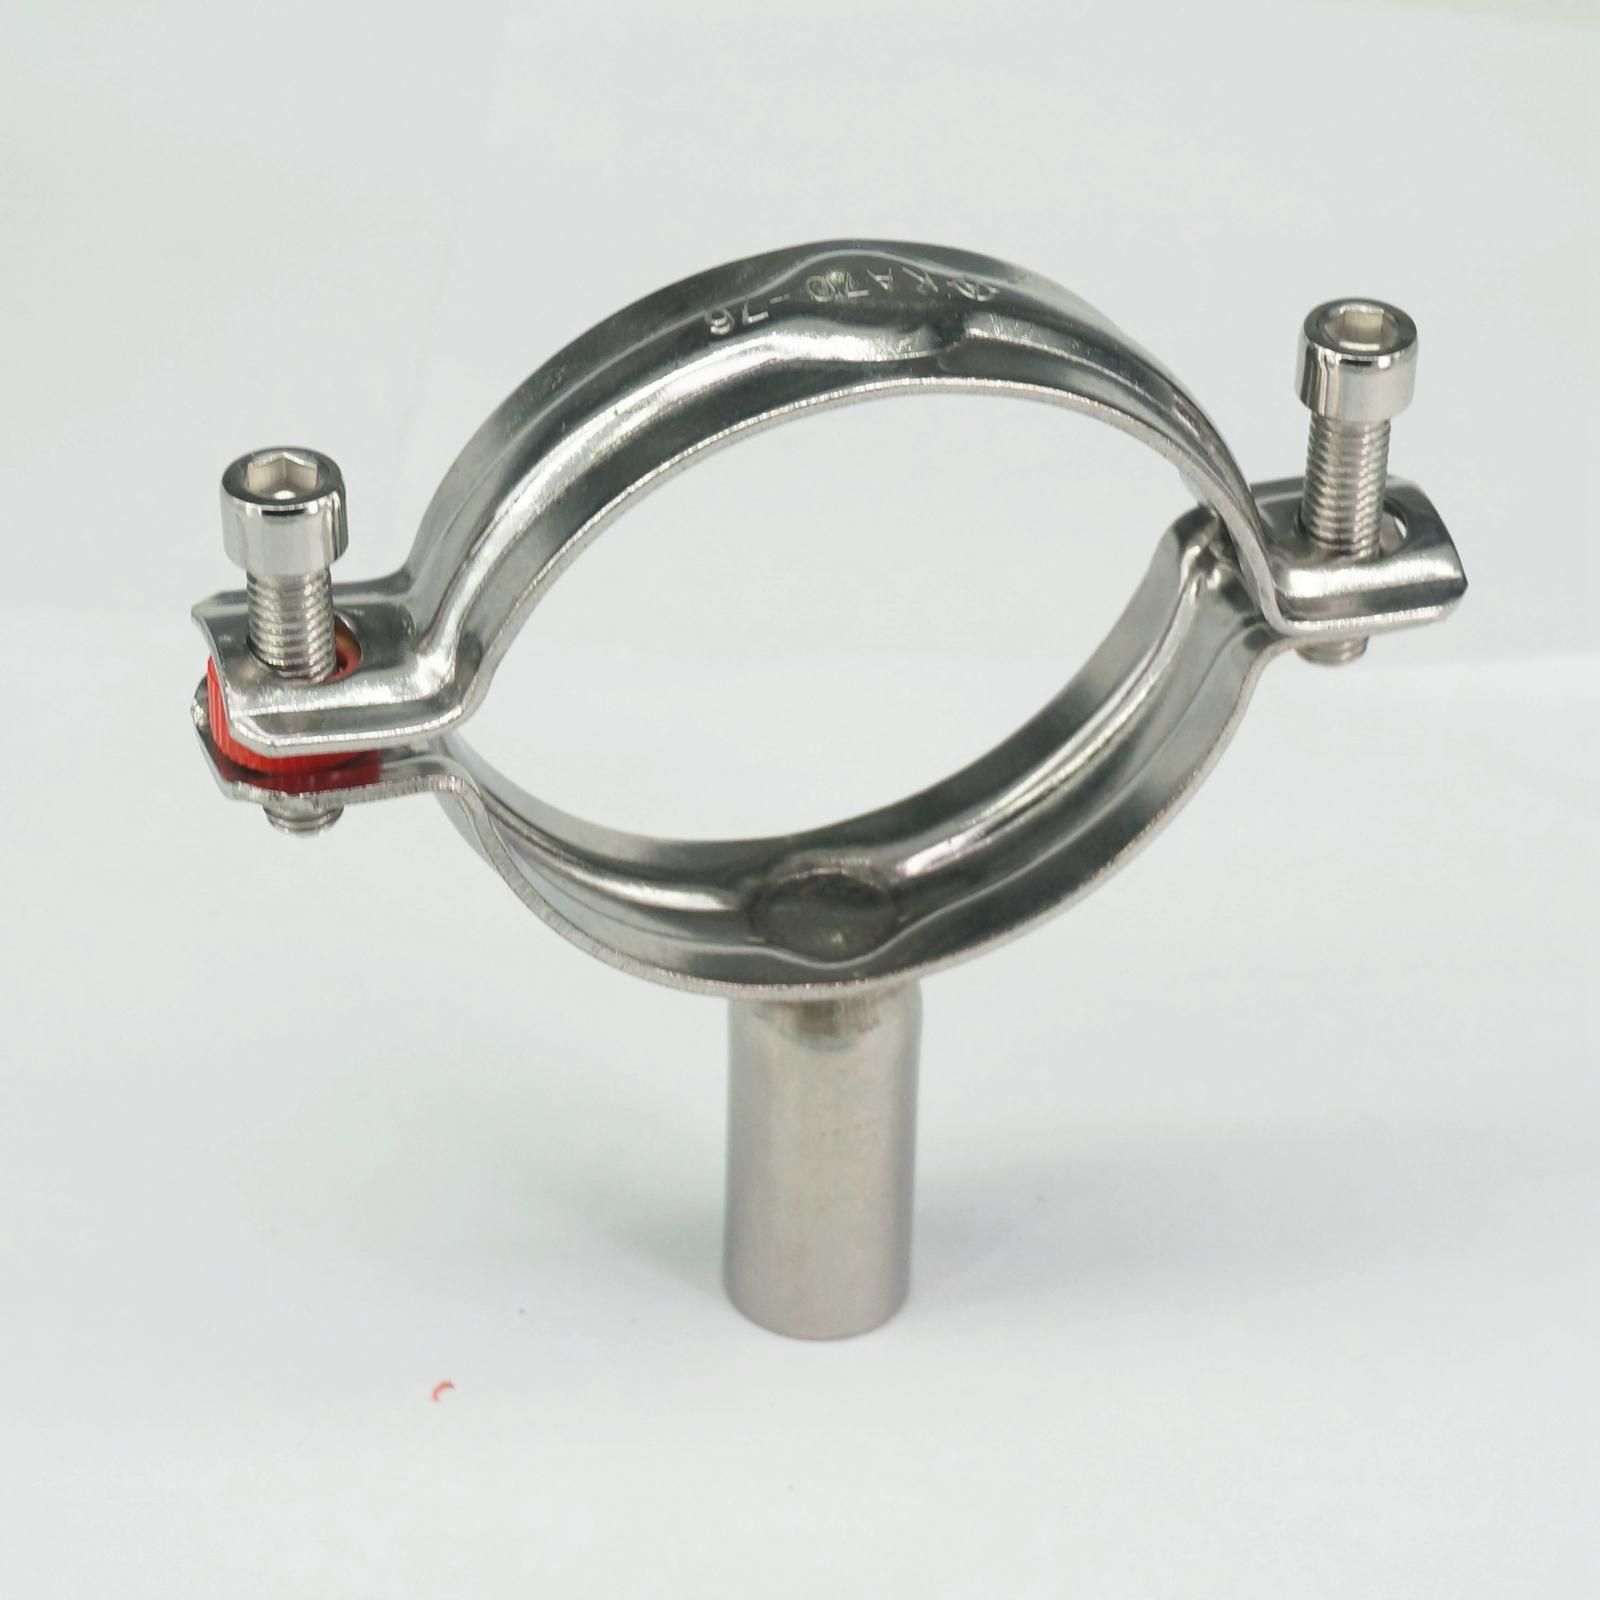 Mm quot stainless steel sanitary pipe clamp clips